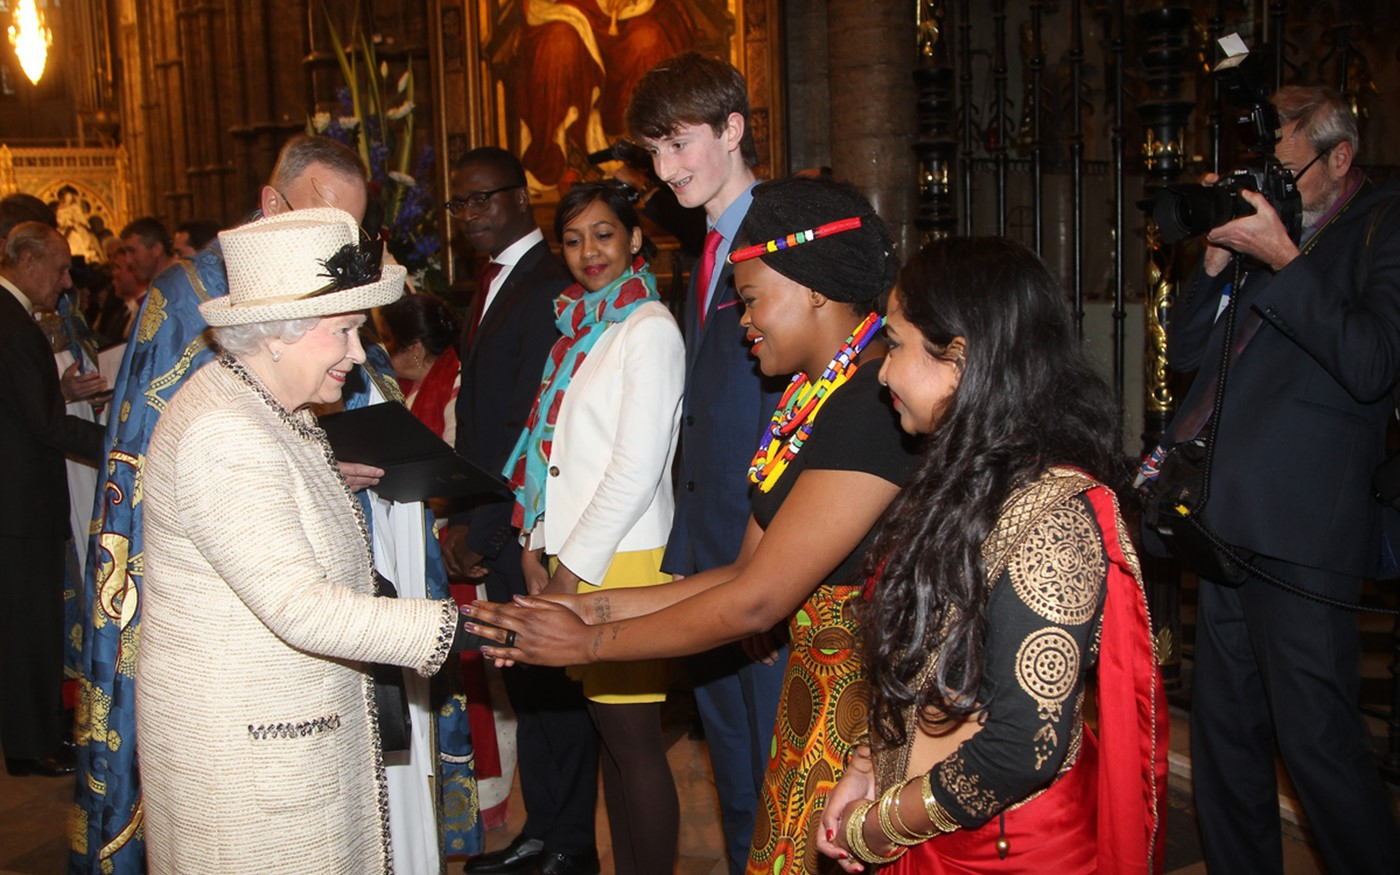 Her Majesty The Queens meets a performer